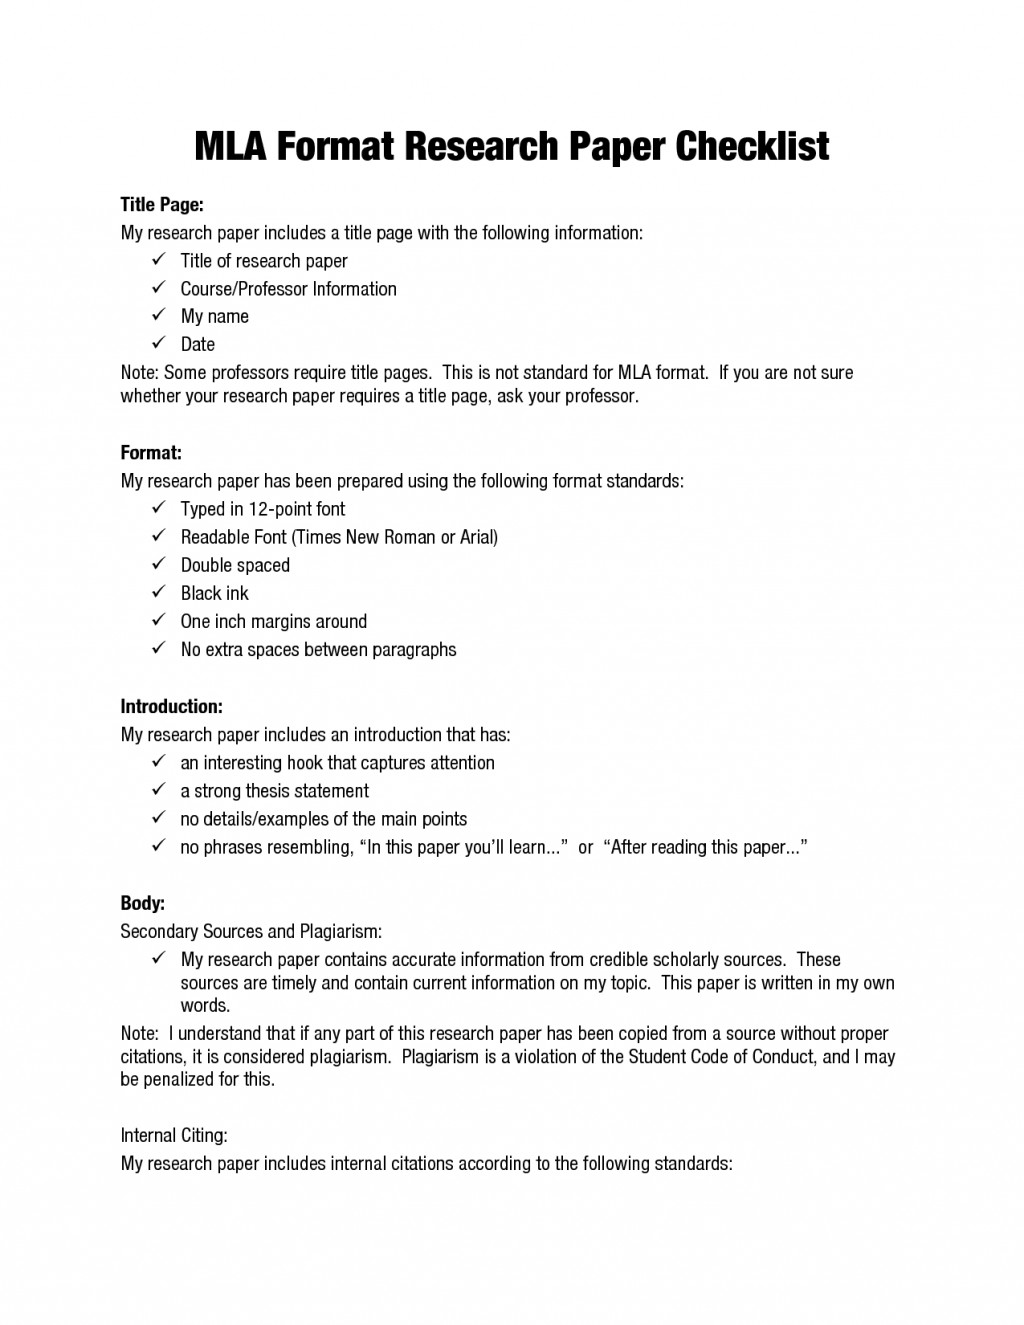 002 How To Cite Sources In Research Paper Apa Magnificent A Style Large